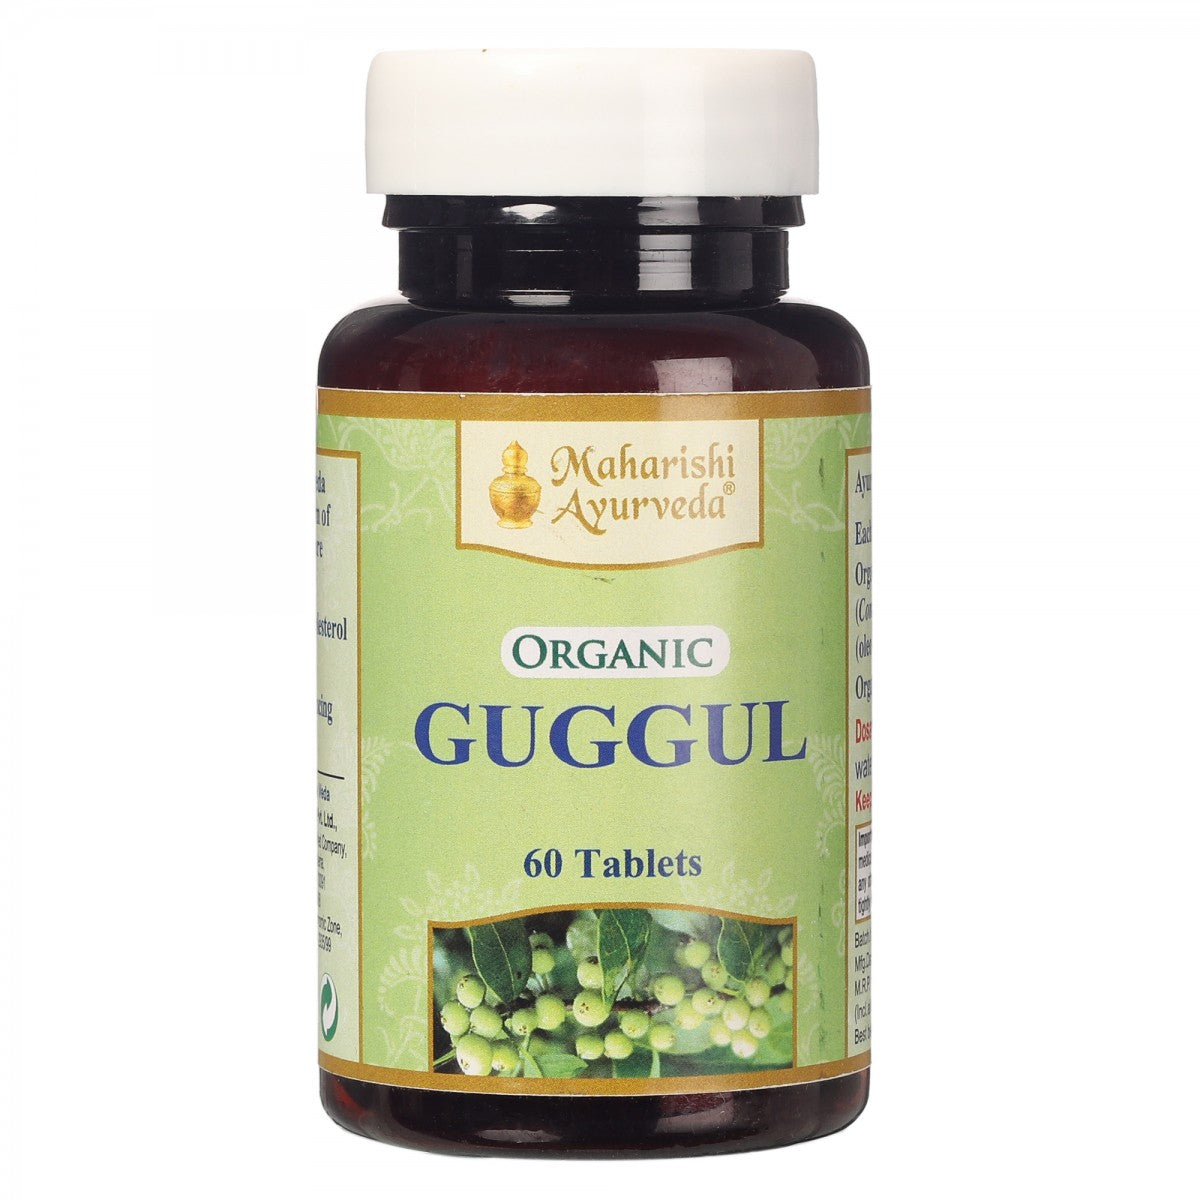 Pack of 2 Organic Guggul | 60 Tablets Pack Each - Maharishi Ayurveda